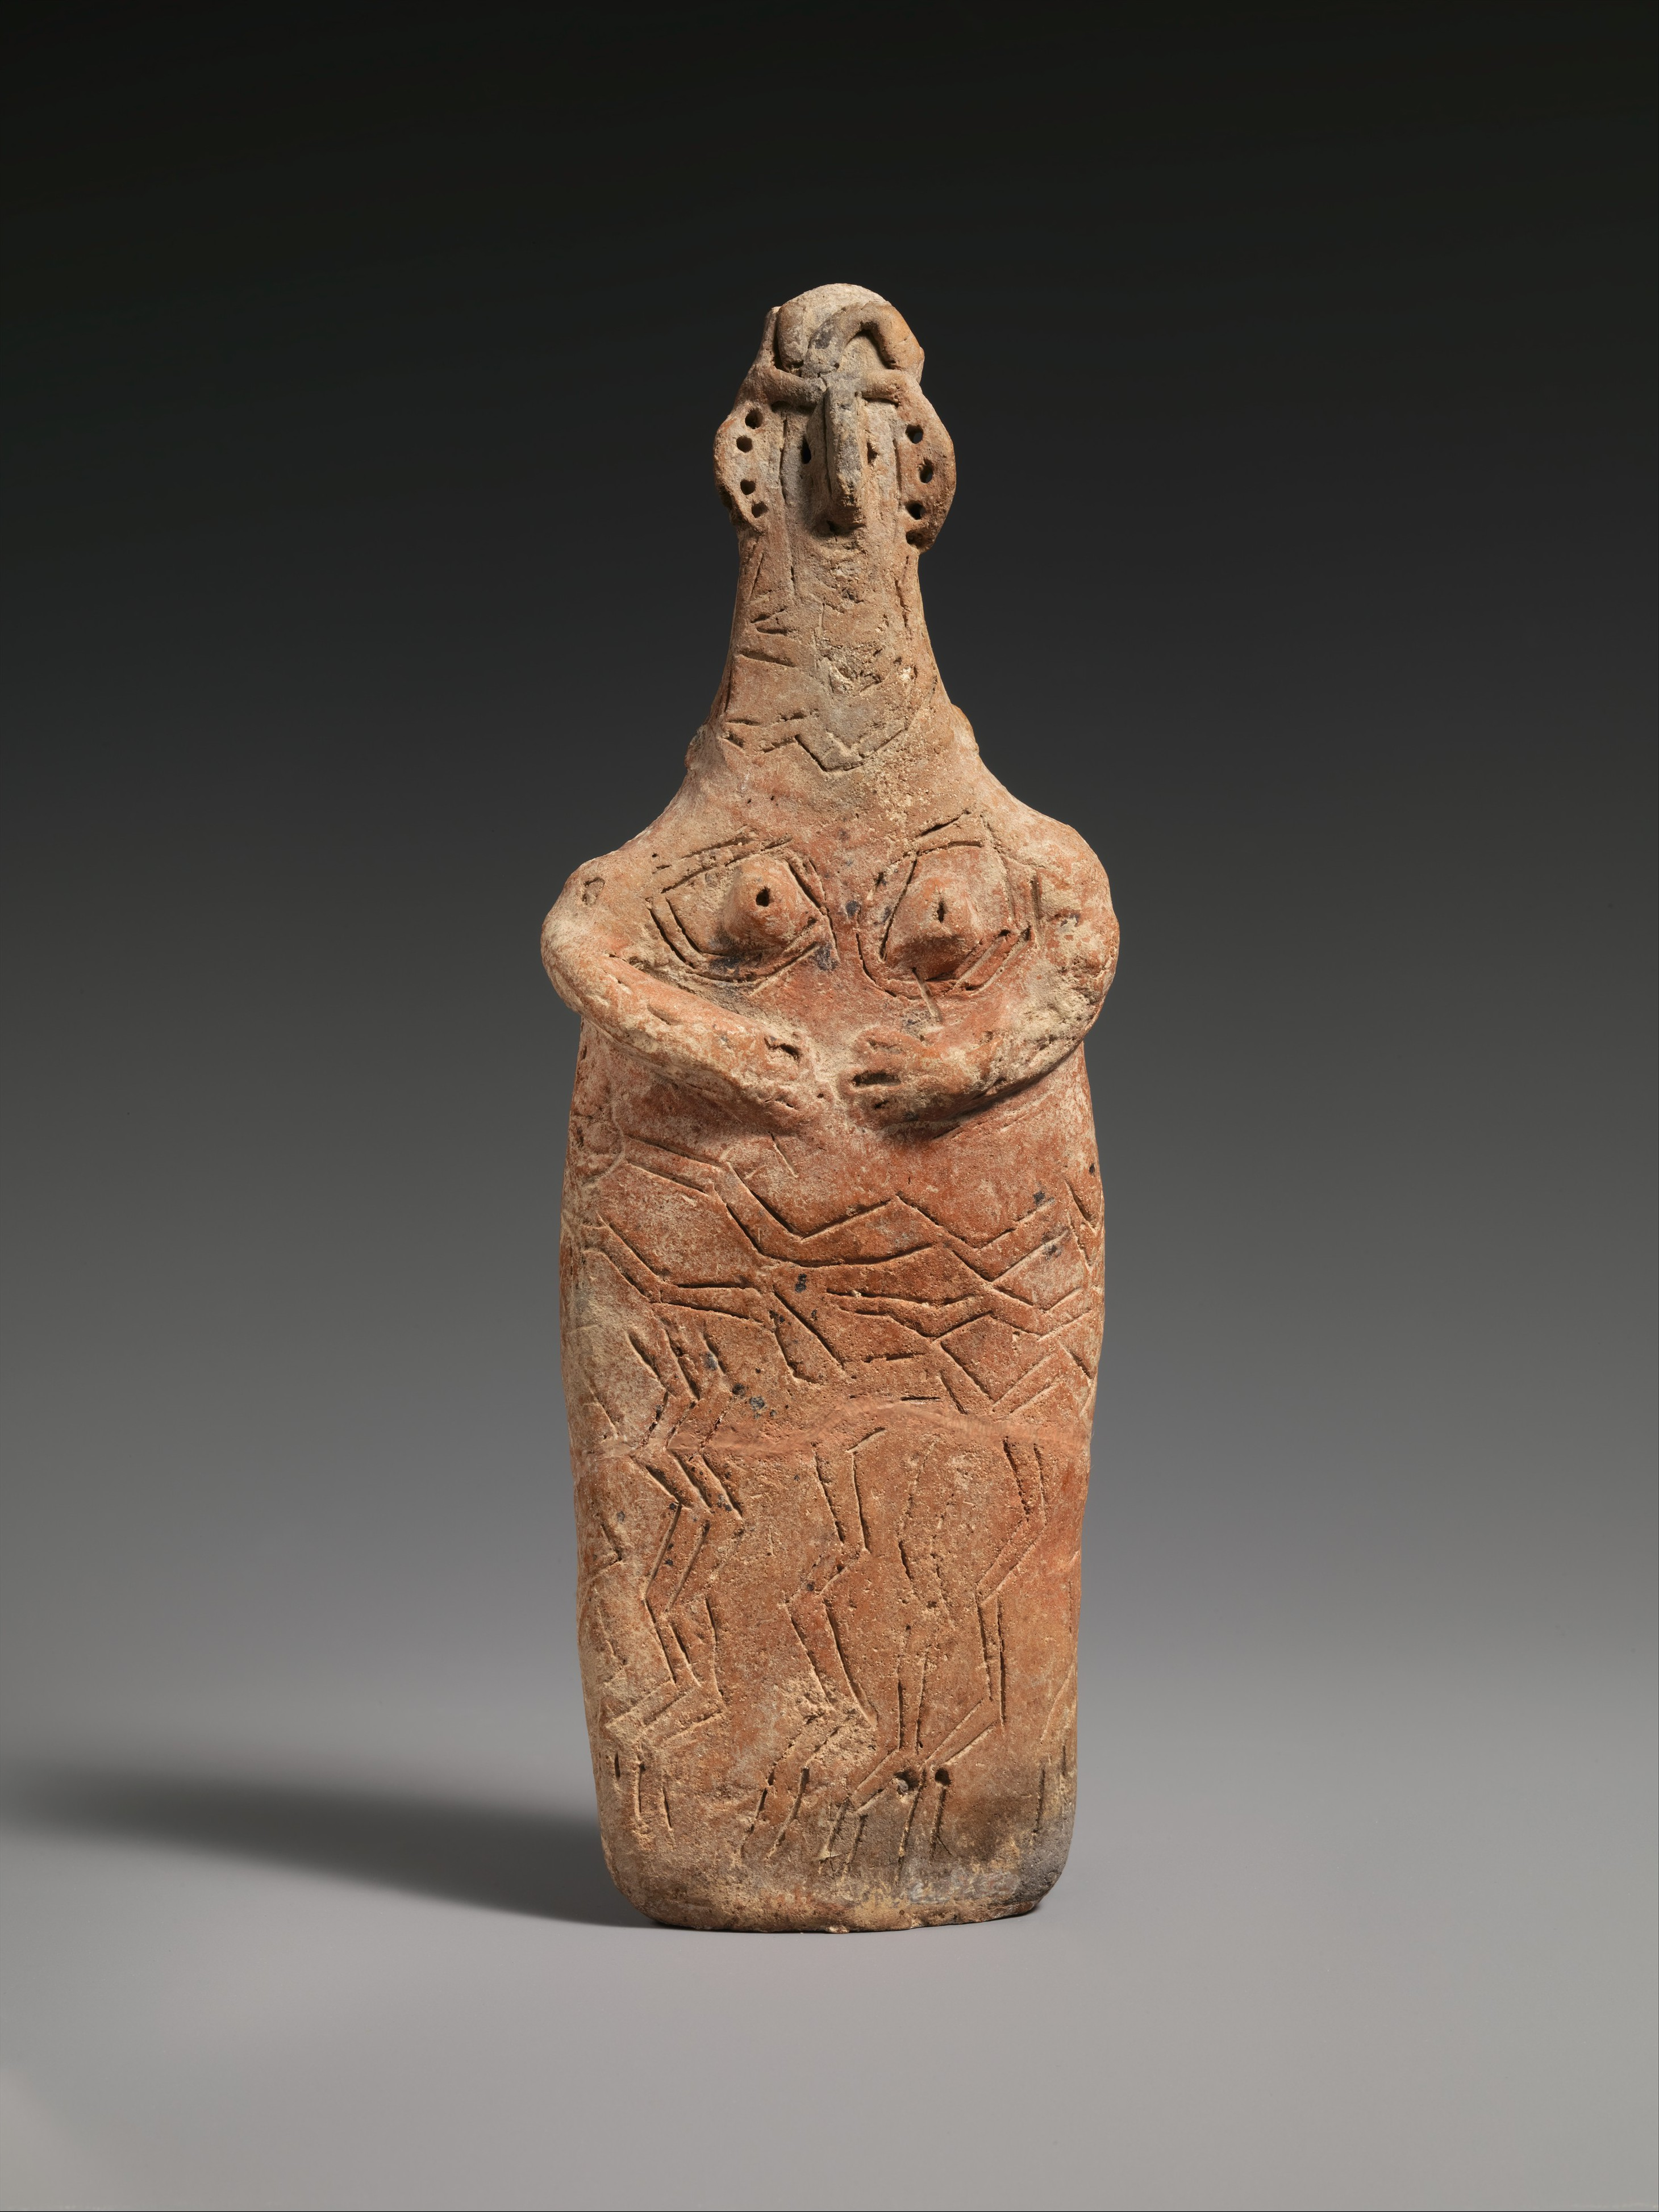 Judith Richter Nude the cesnola collection of cypriot art: terracottas